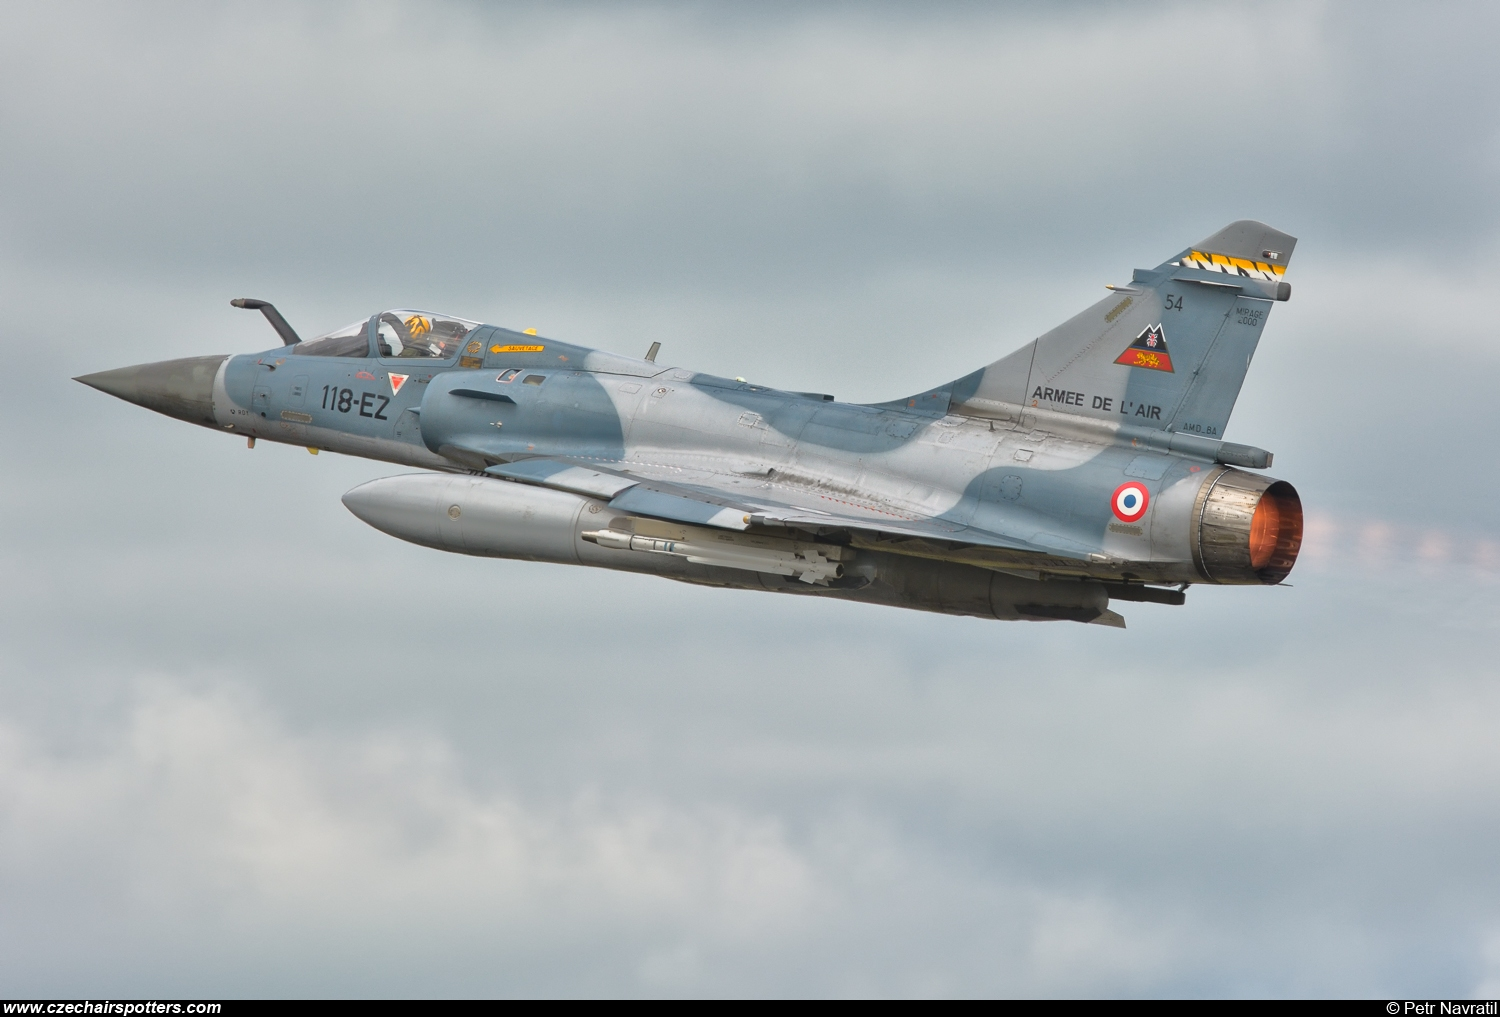 France - Air Force – Dassault Mirage 2000-5F 118-EZ